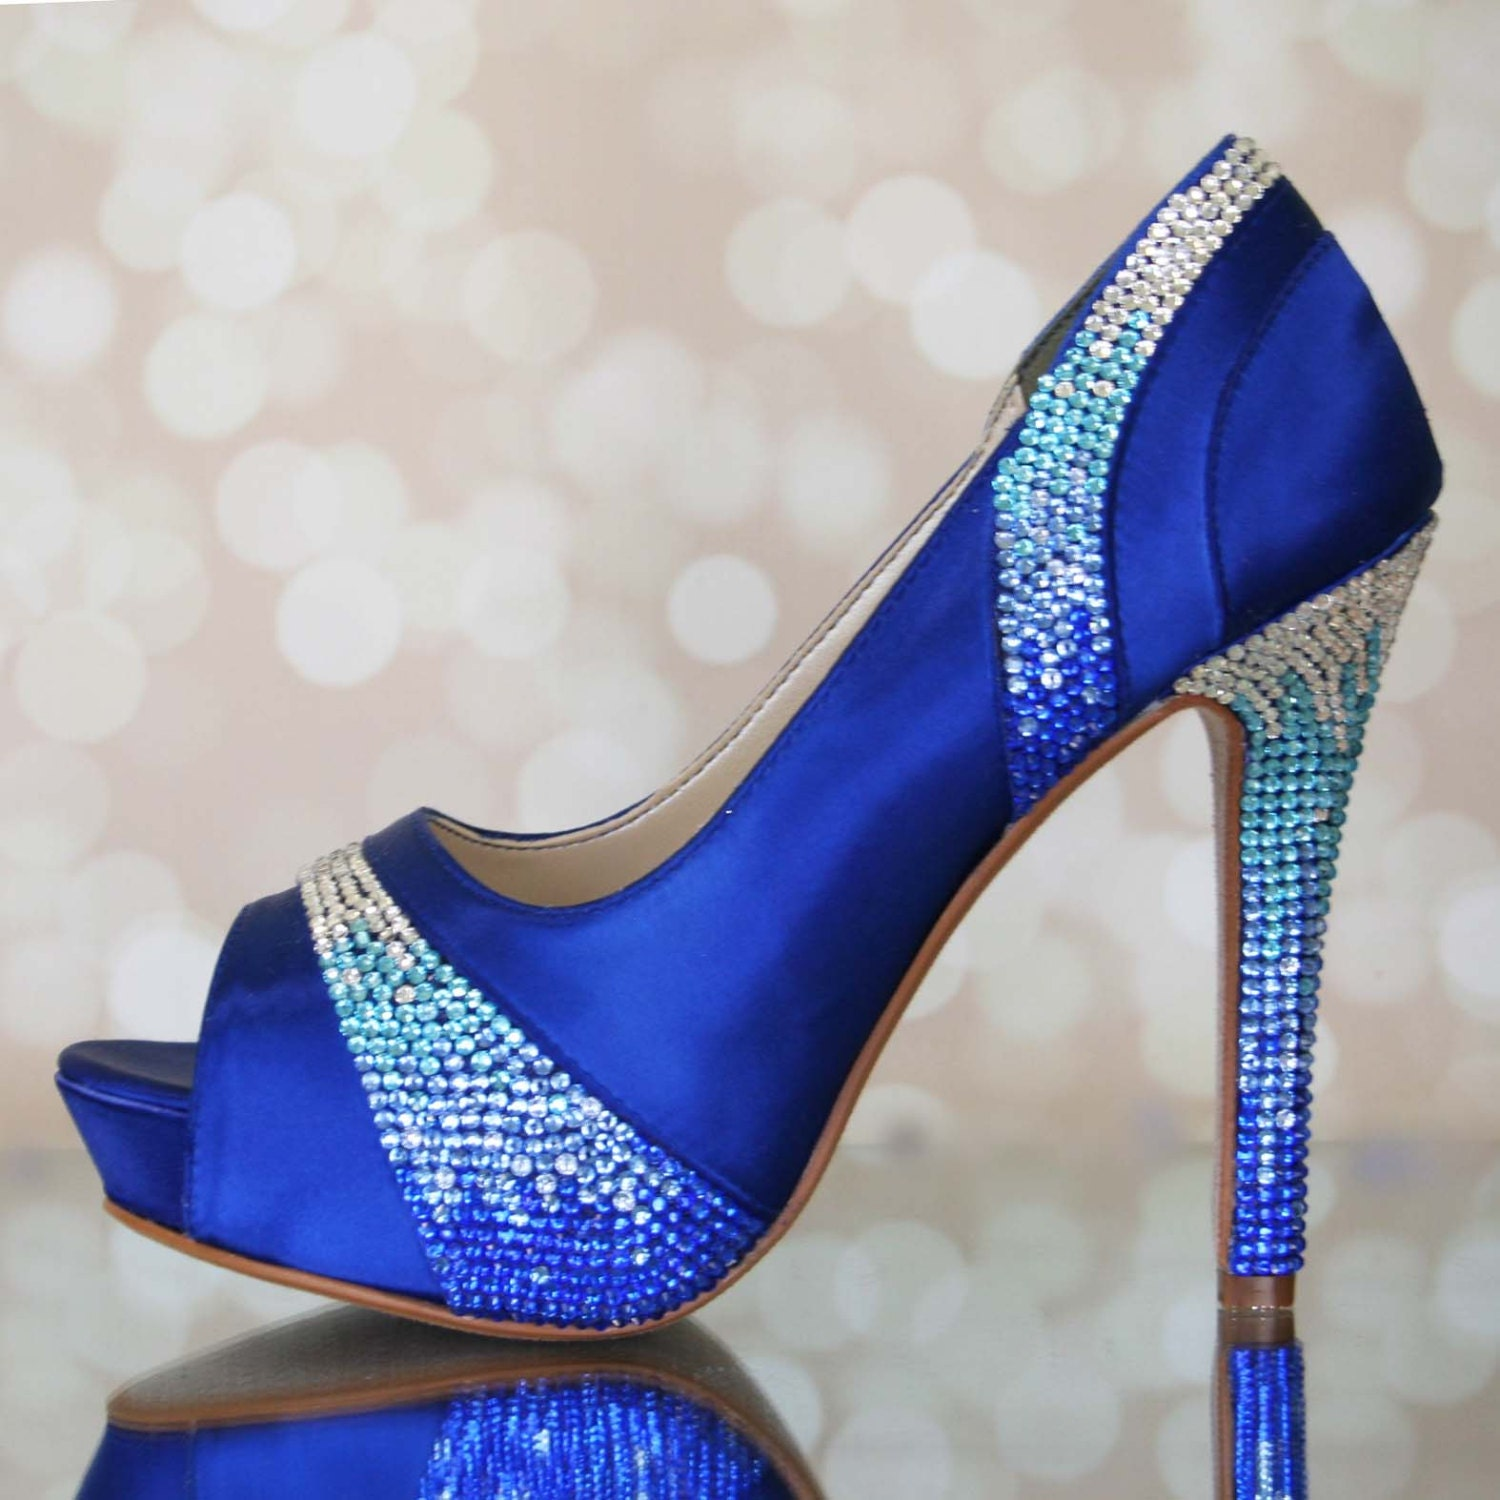 cybergamesl.ga: royal blue platform heels. From The Community. DREAM PAIRS Gloria Women's New Classic Elegant Versatile Stiletto Dress Platform Pumps Heels Shoes. by DREAM PAIRS. $ $ 21 99 Prime. FREE Shipping on eligible orders. Some sizes/colors are Prime eligible. 4 out of 5 stars